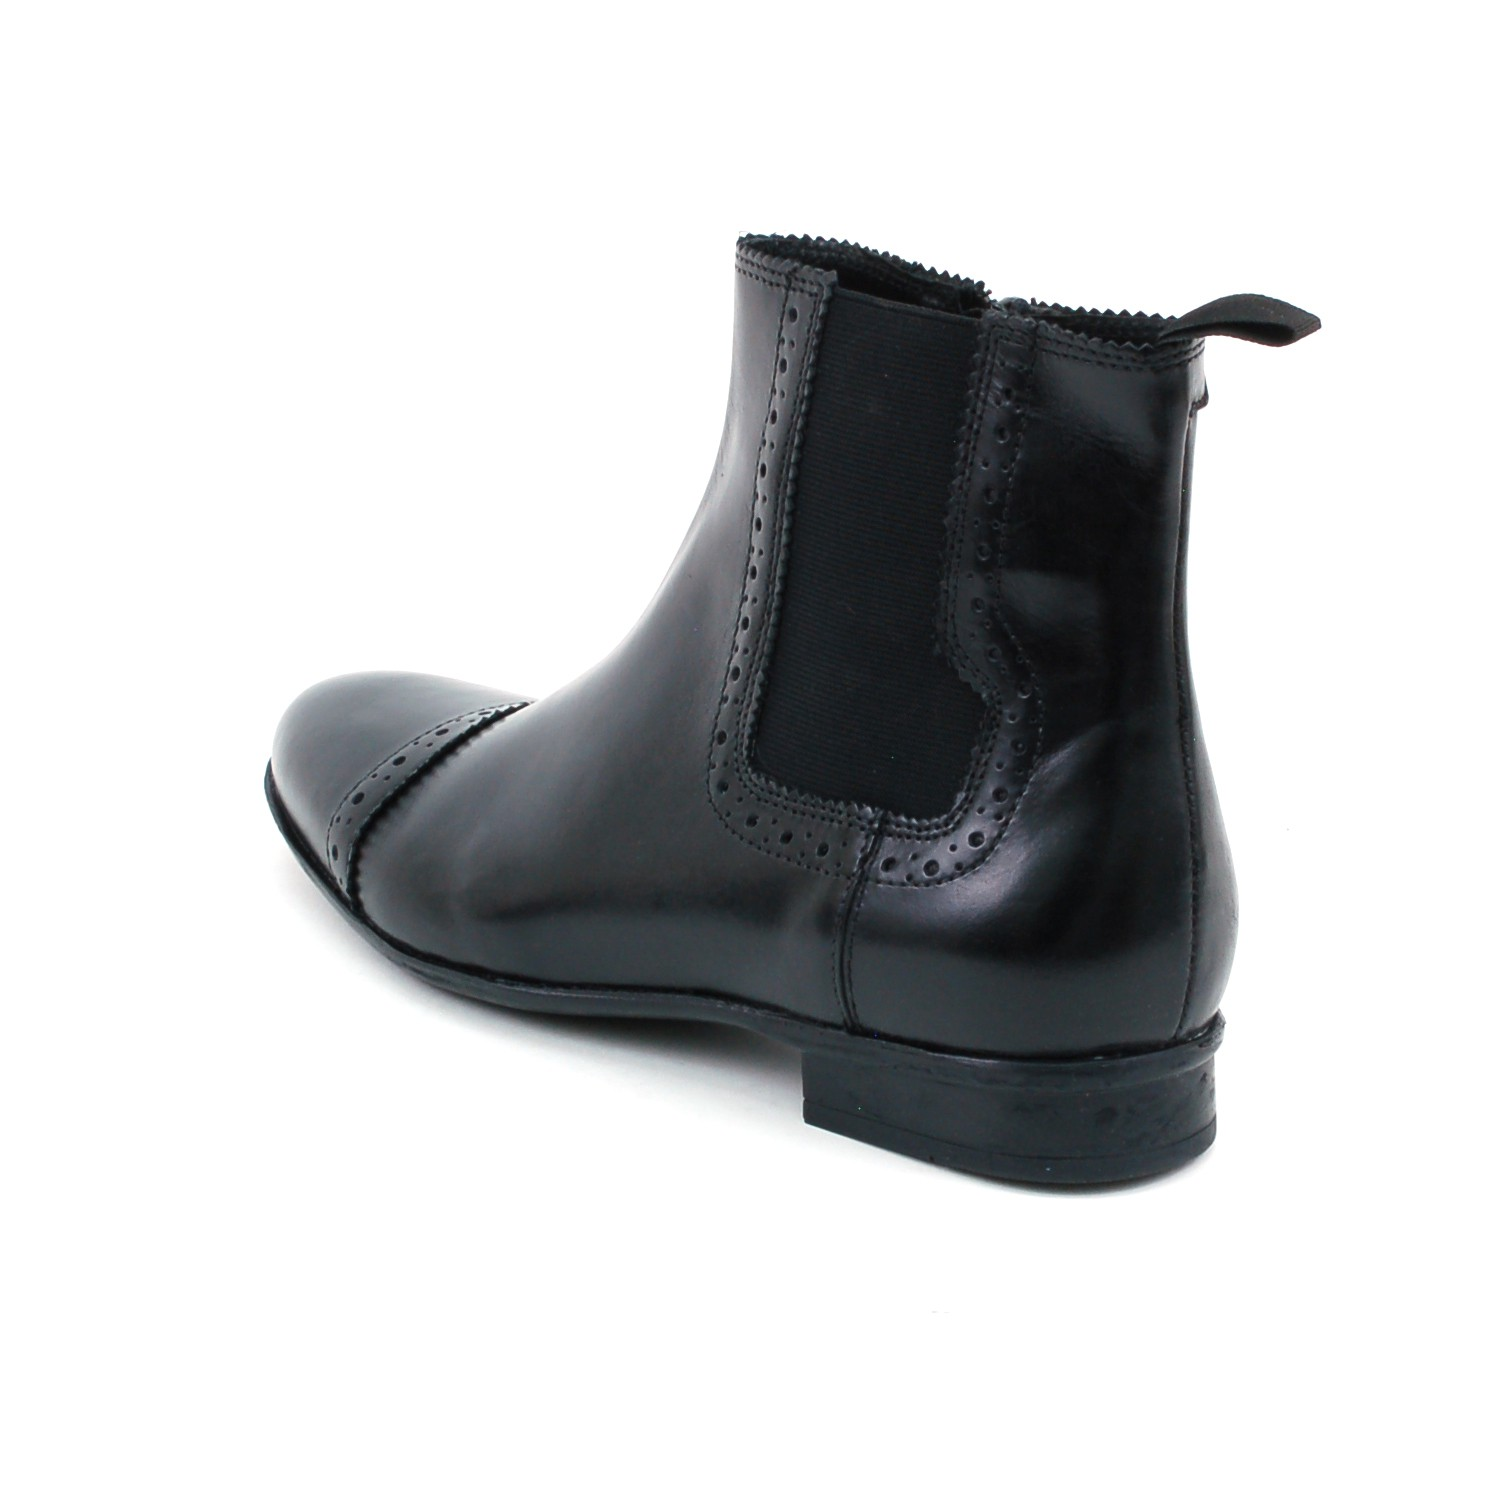 mens chelsea boots dressy ankle stretch side zipper